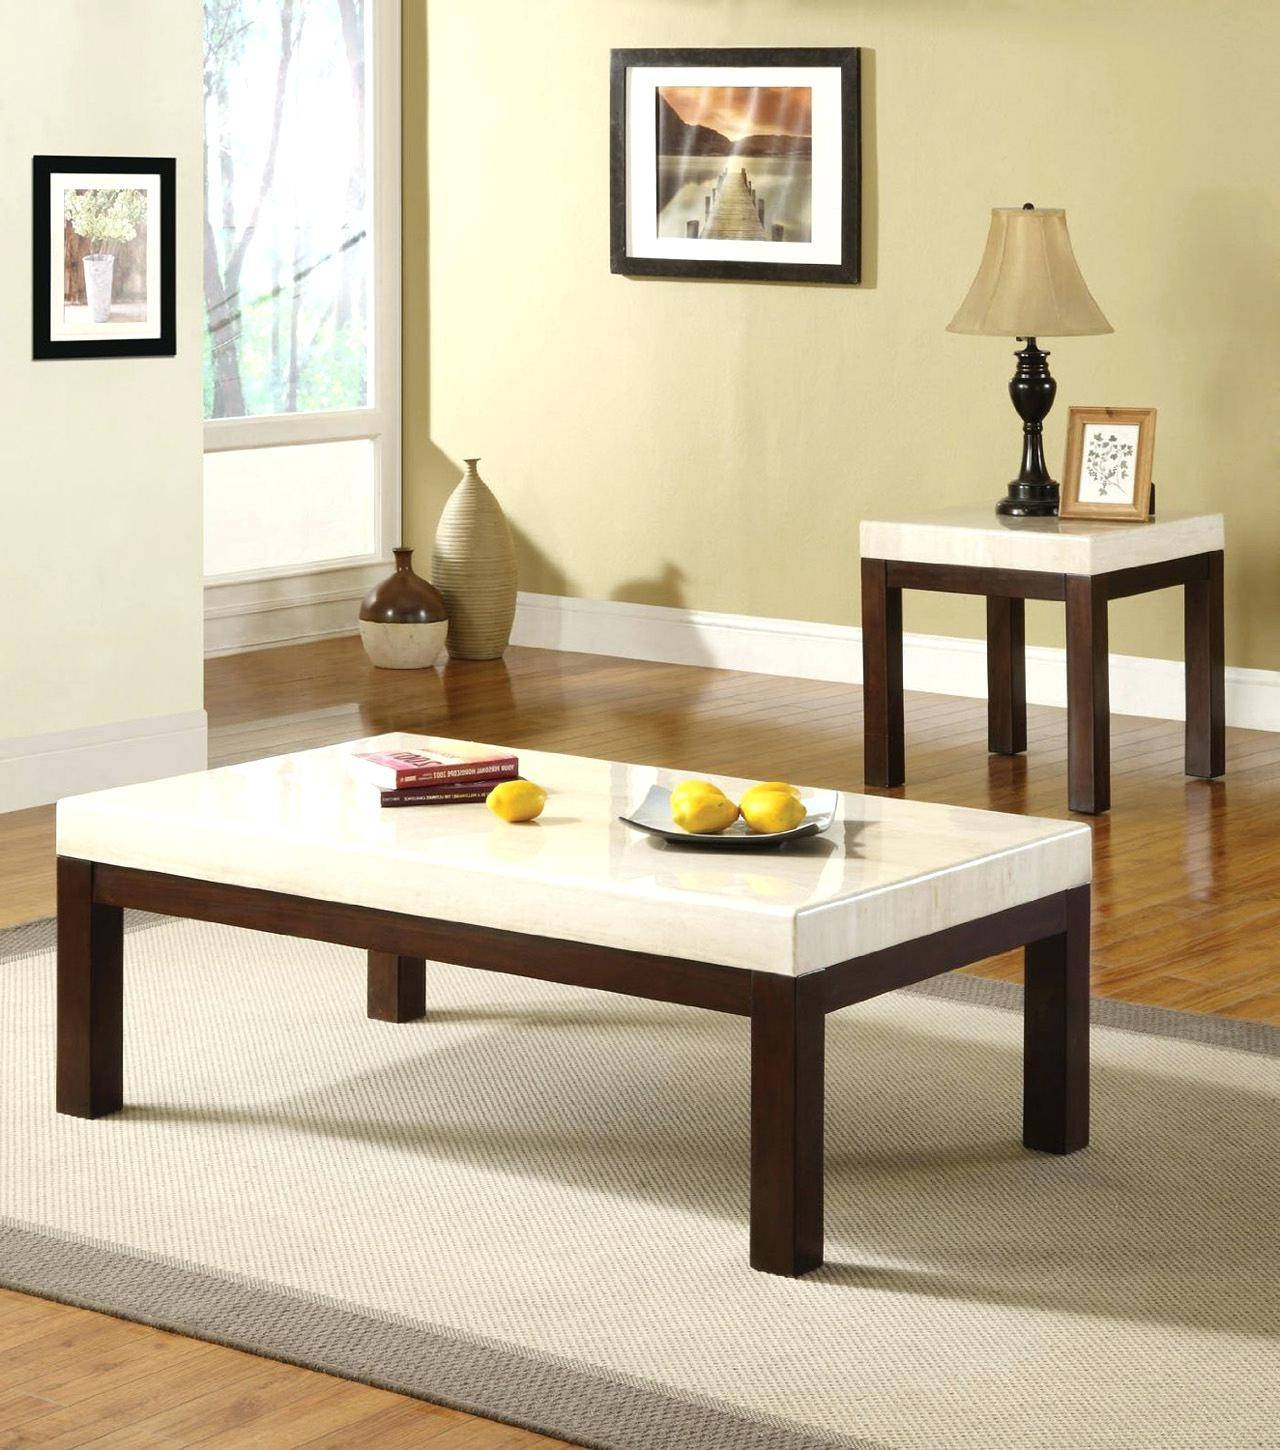 Coffee Table ~ Modern White Coffee Table Sets For Sale Marble And throughout Tv Cabinets and Coffee Table Sets (Image 5 of 15)